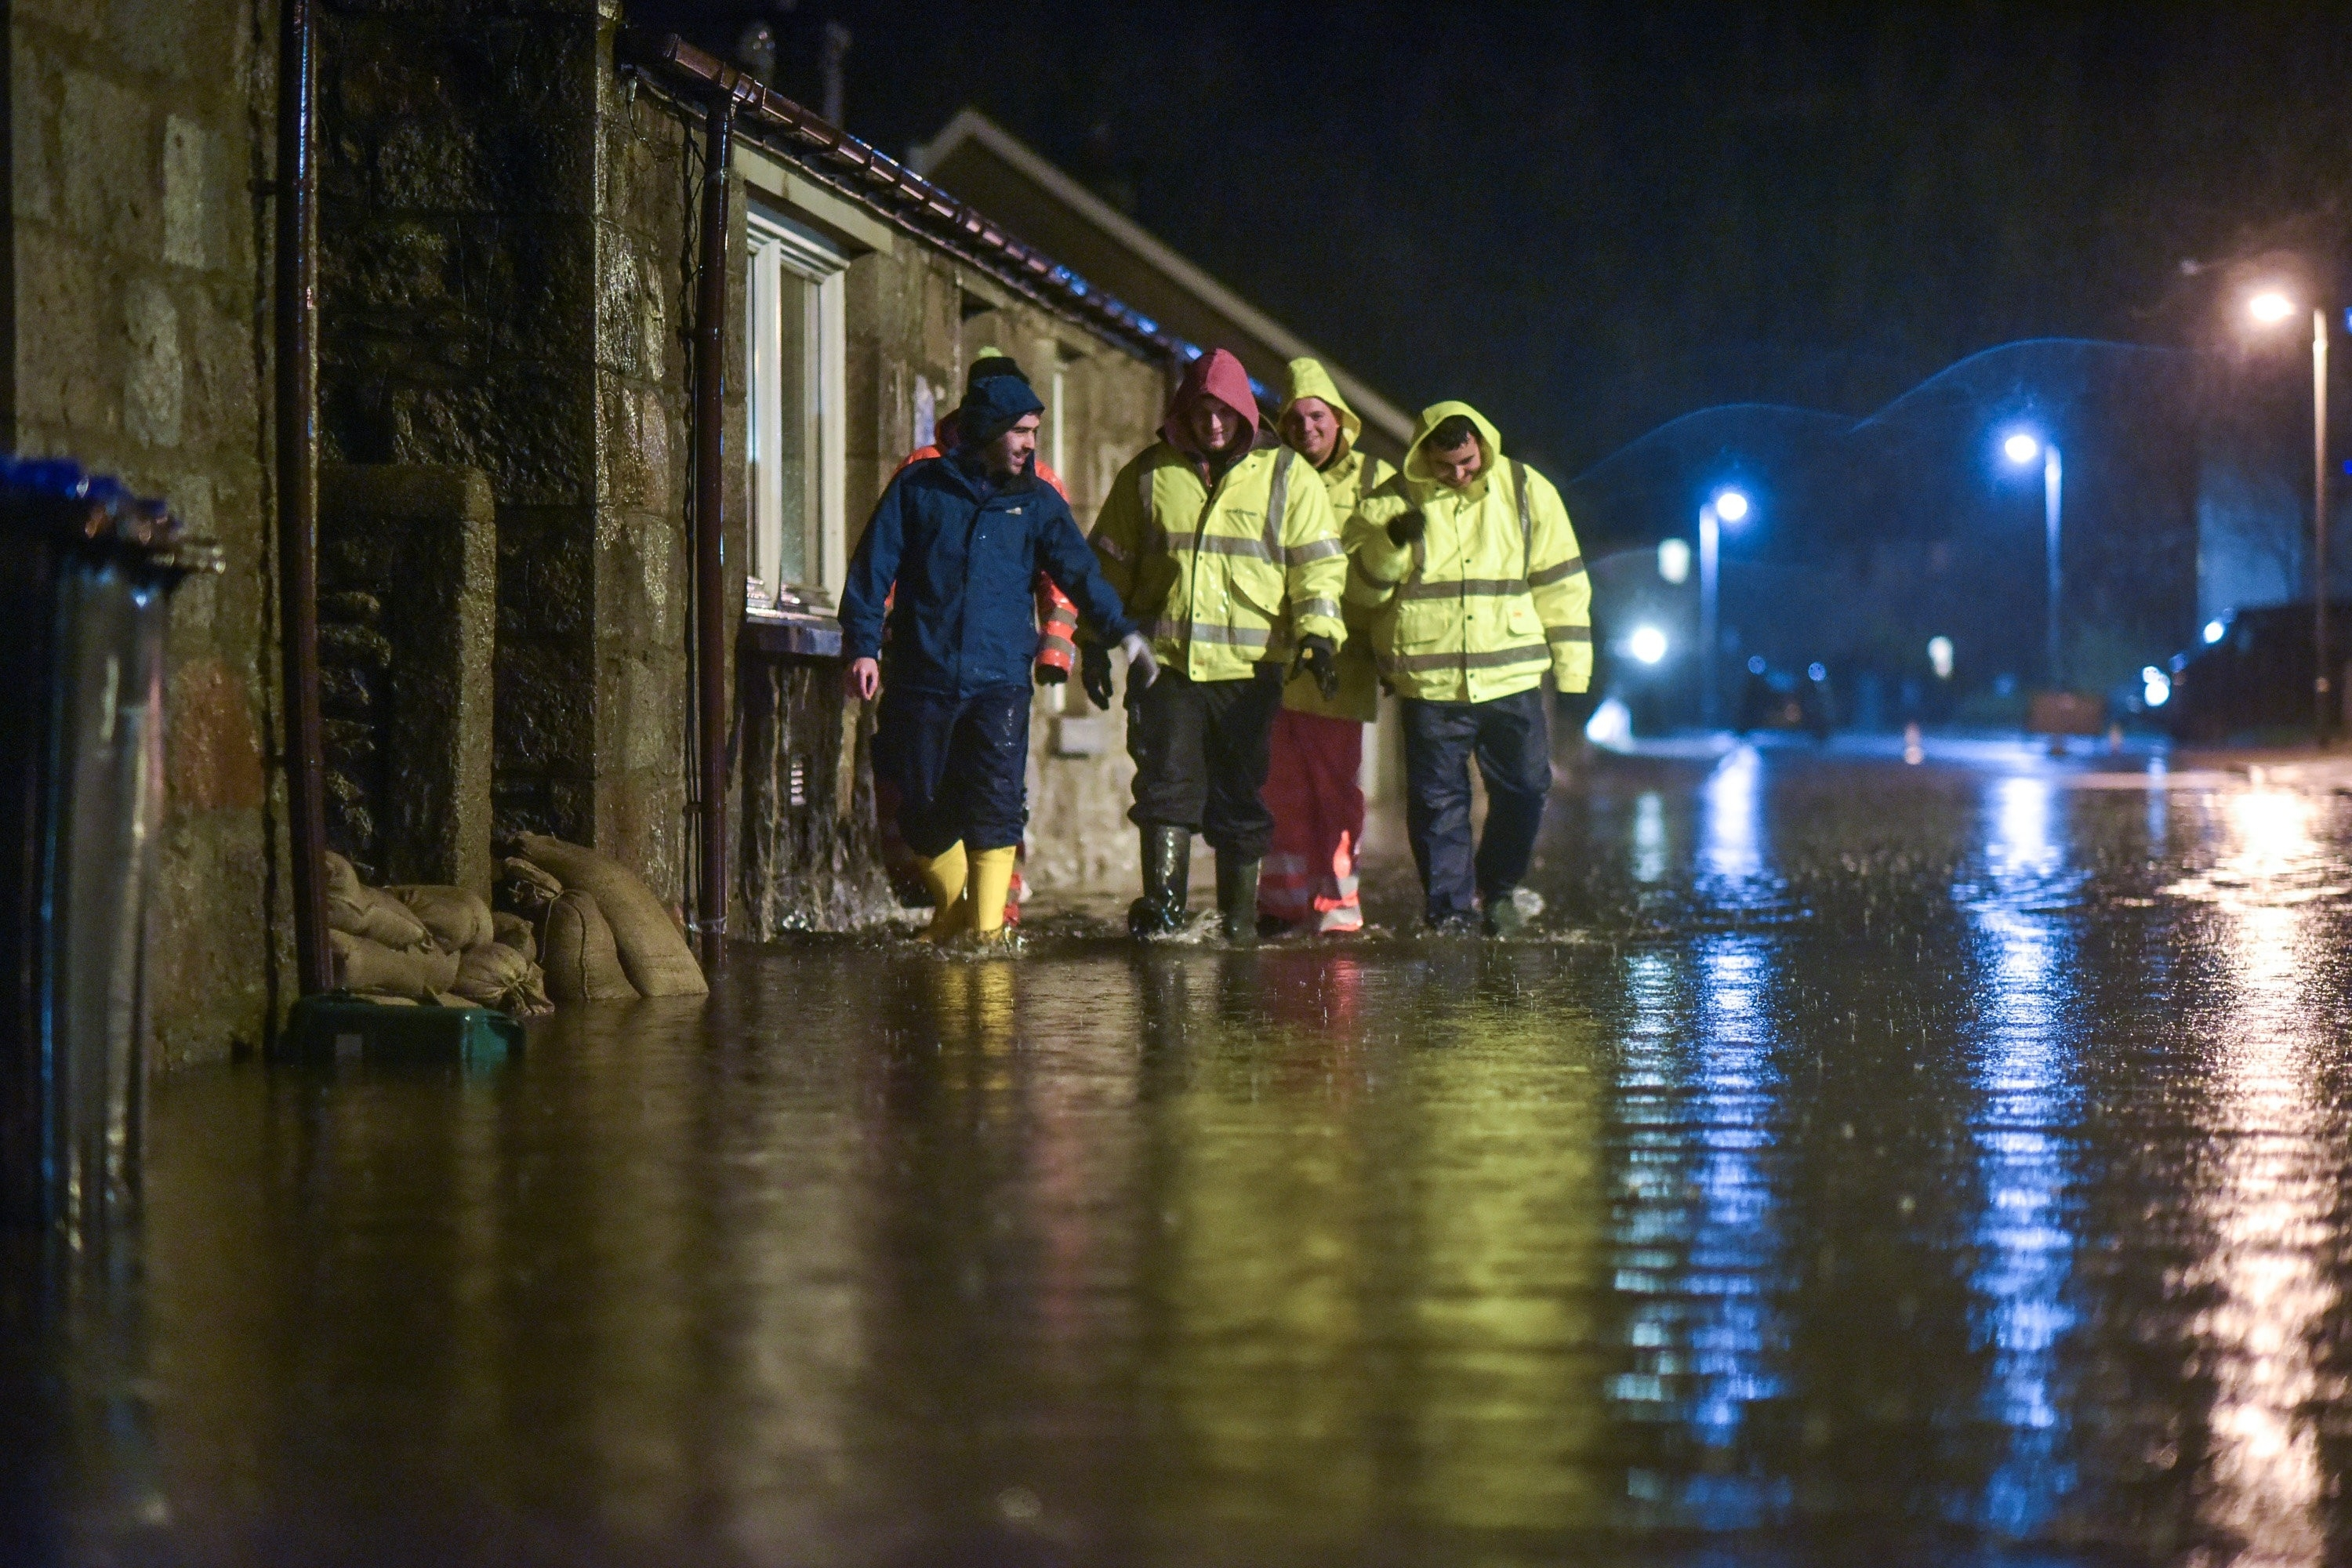 Men search homes in the Port Elphinstone area of Inverurie, Aberdeenshire as they begin to experience flooding after the River Don burst its banks on January 07 2016. Scottish Envornmental Protection Agency (SEPA) have issued two severe flood warnings for both Inverurie and Kintore, both in Aberdeenshire, tonight.